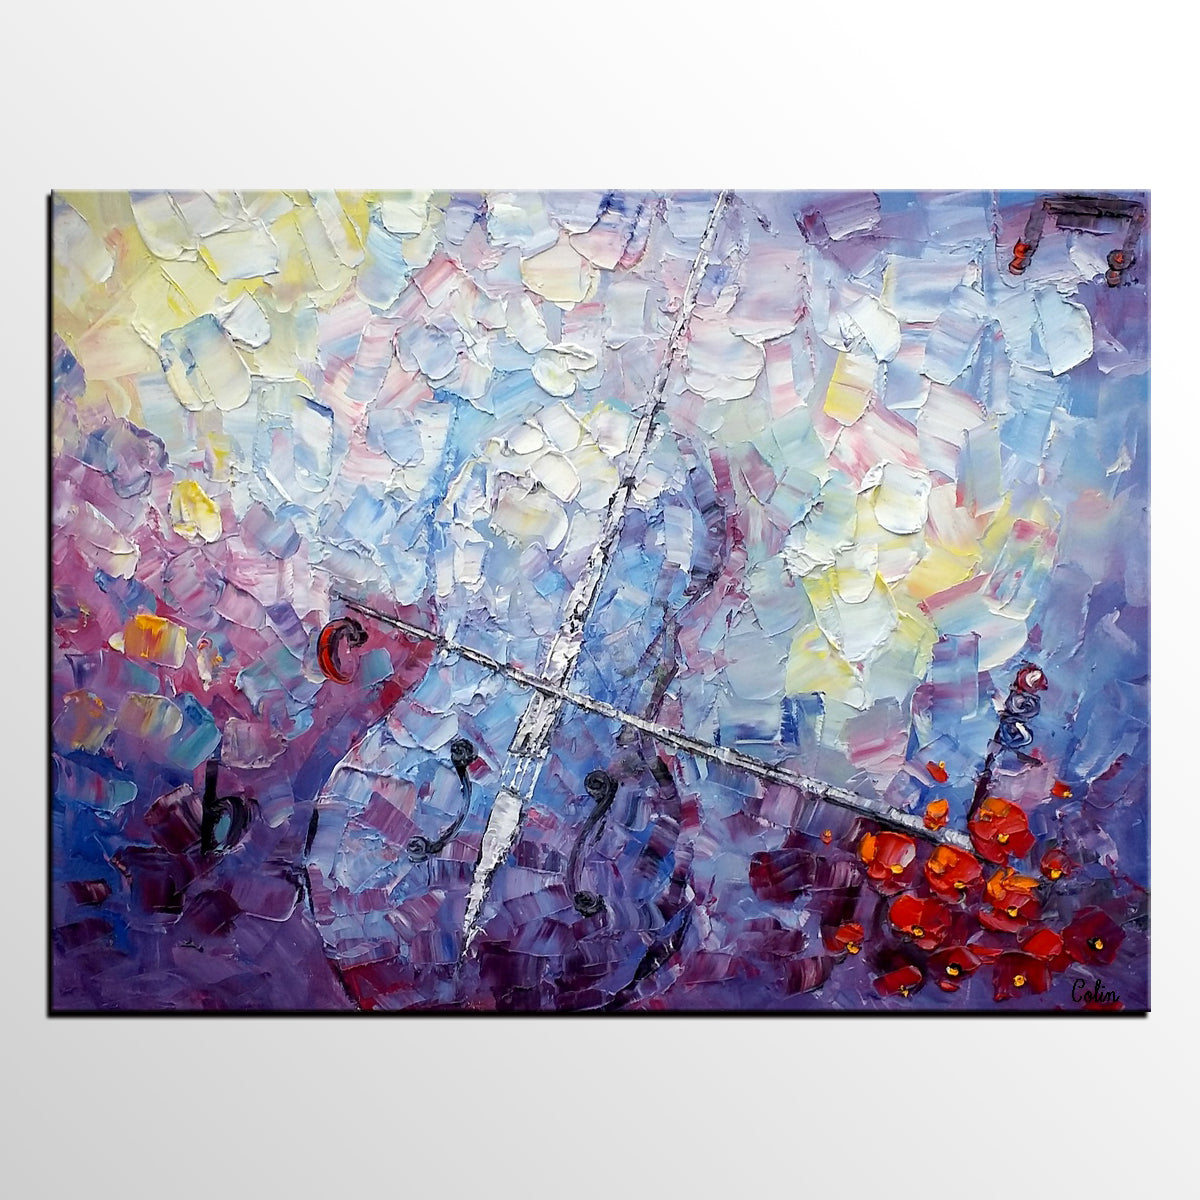 Abstract Art Painting, Canvas Wall Art, Custom Abstract Art Painting, Violin Painting - artworkcanvas